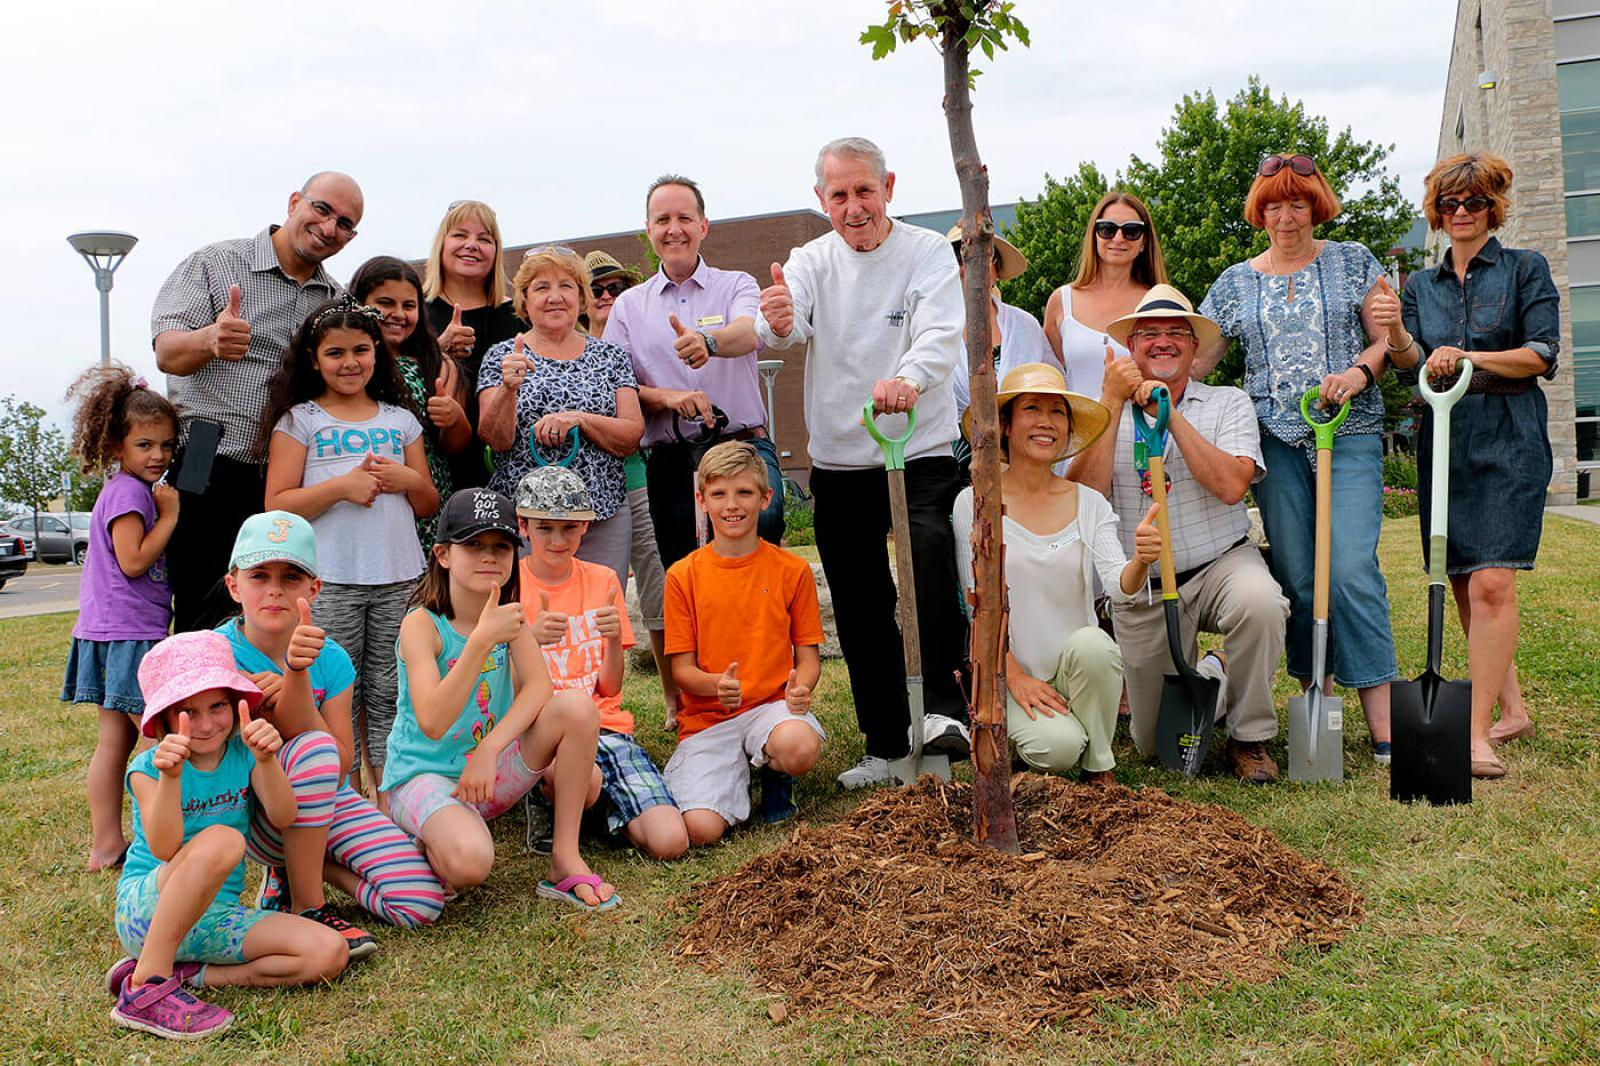 Milton Mayor Gord Krantz (centre with shovel) is surrounded by gardening enthusiasts during a Garden Days tree planting celebration at Milton Public Library.